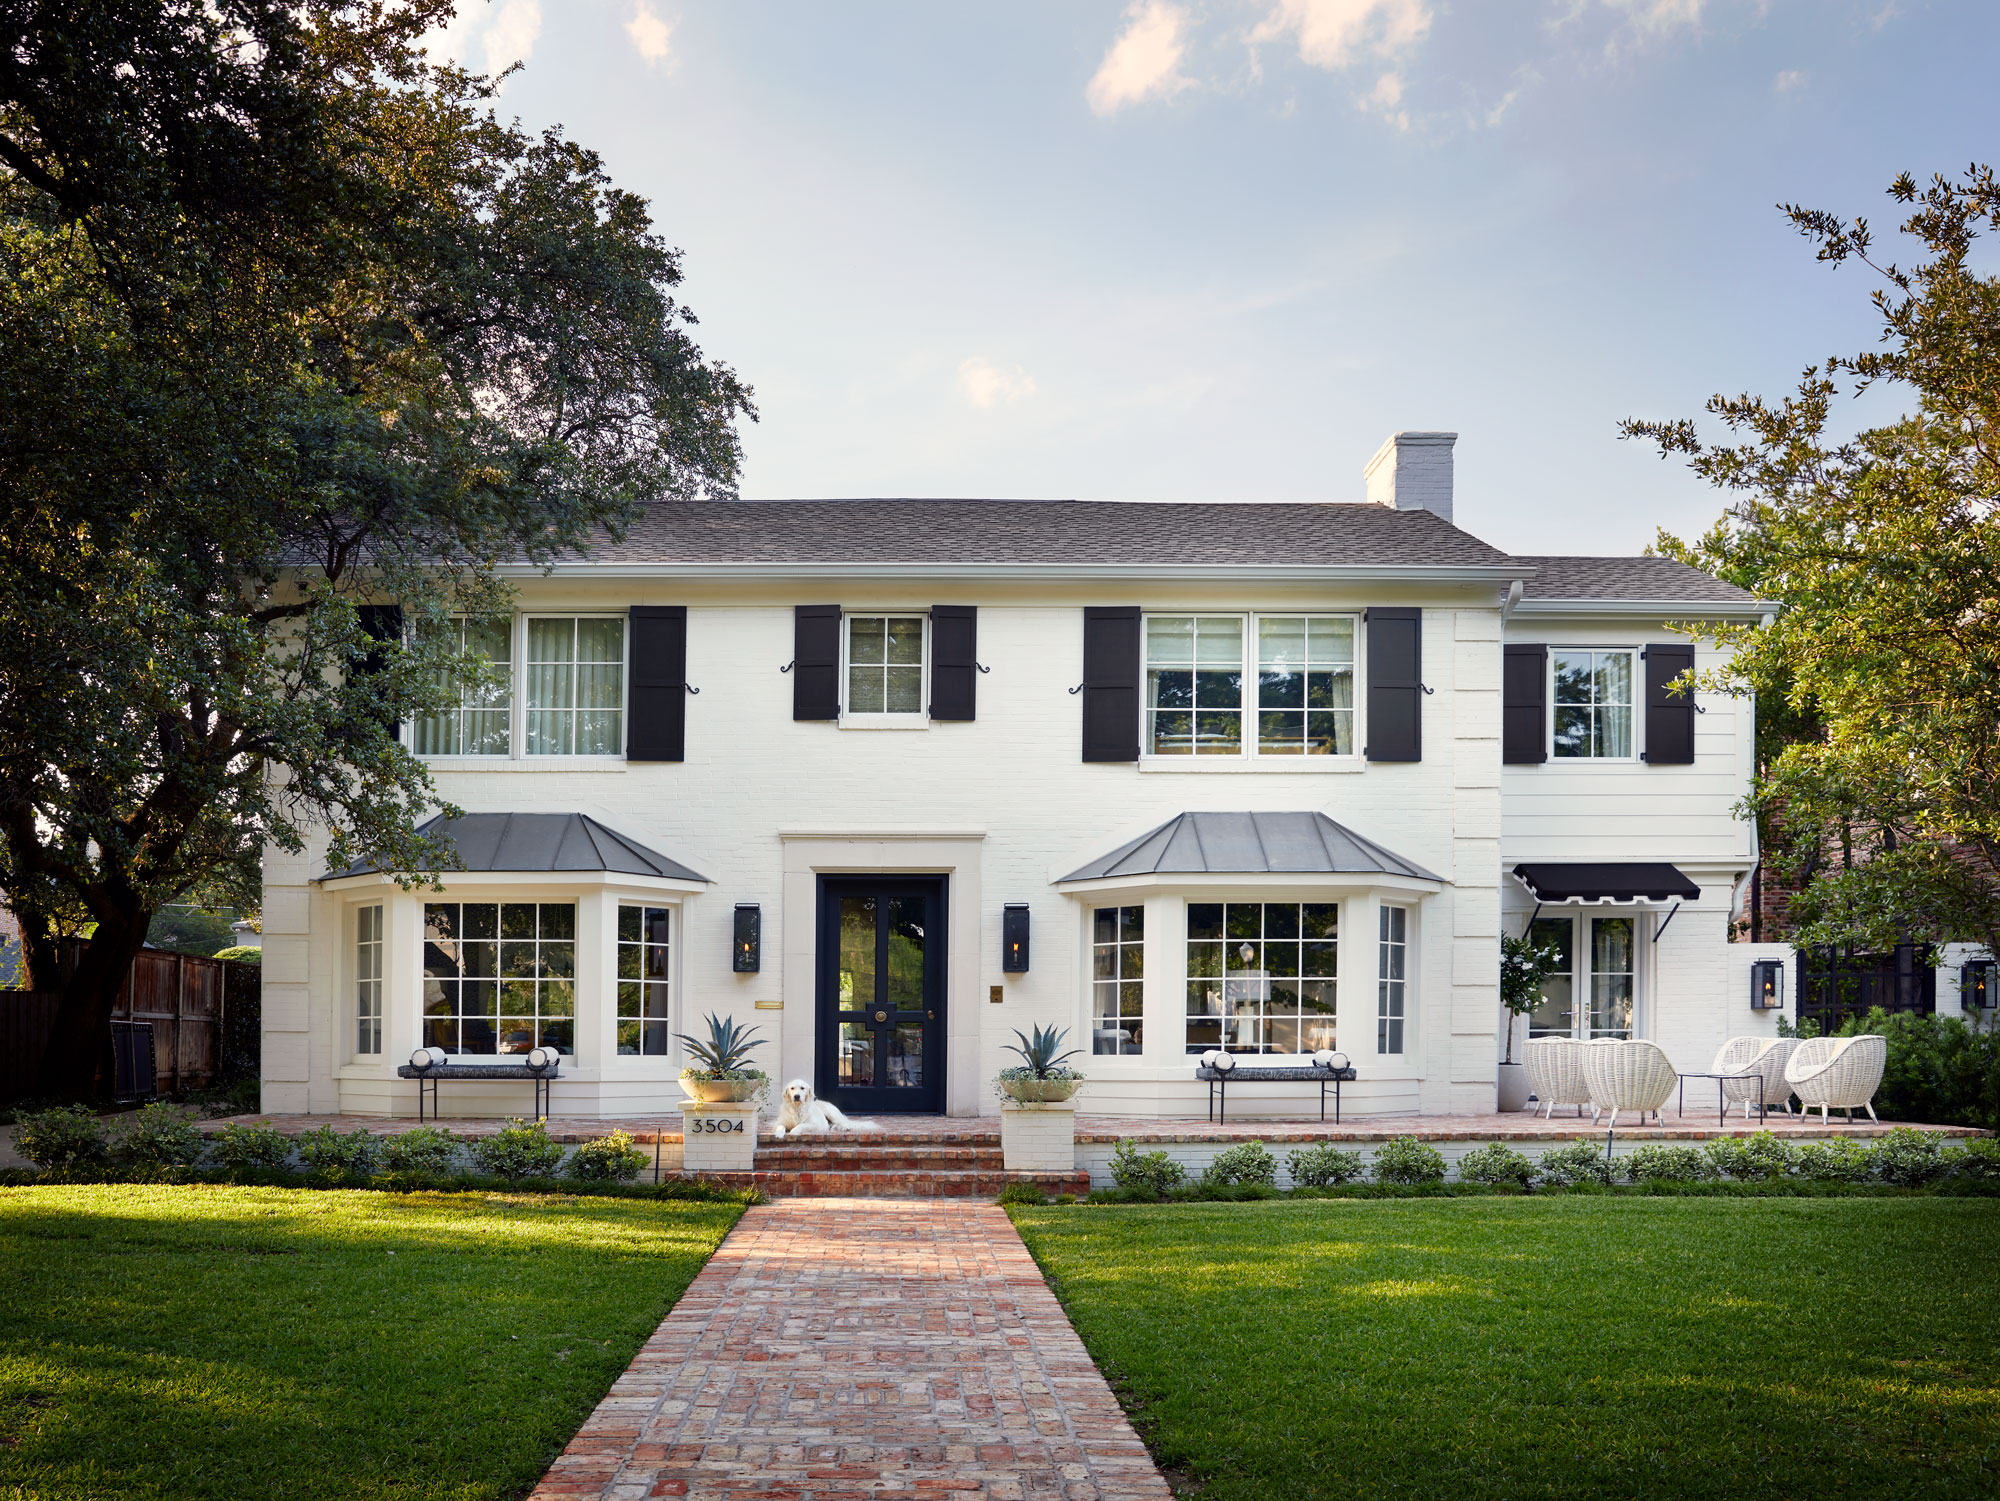 """White colonial-style house with shutters and a green lawn. The door is painted the Sherwin Williams shade of """"Tricorn Black."""""""